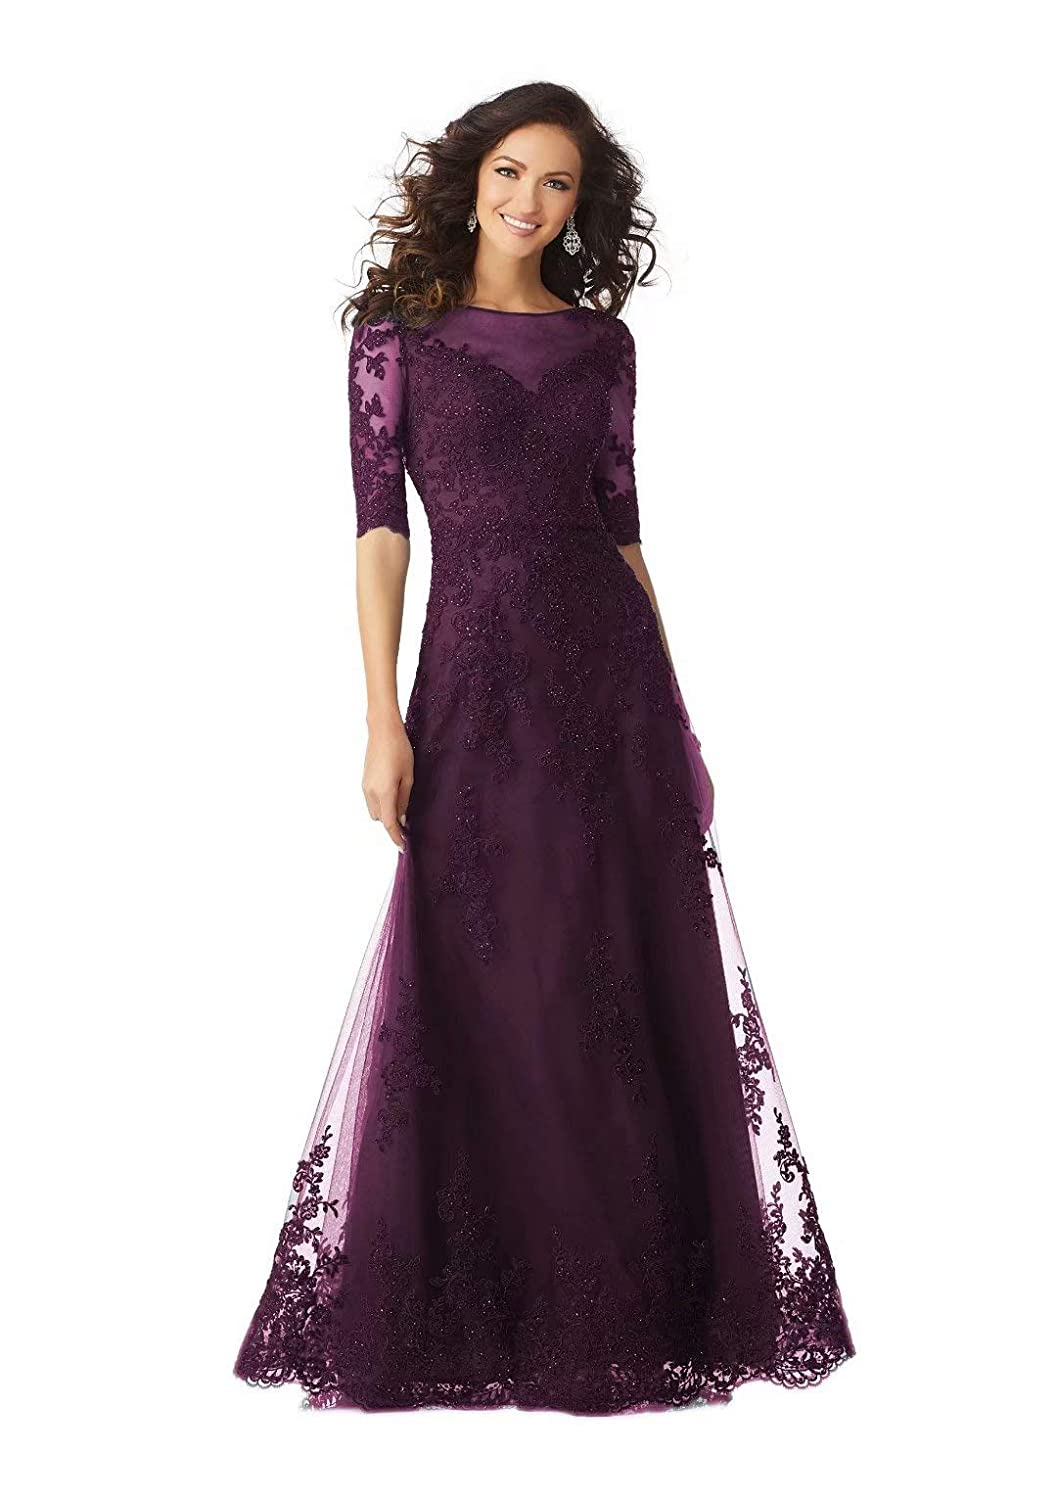 color 3 Unions Women Long Formal Evening Dresses Lace Applique Beaded Prom Party Gowns